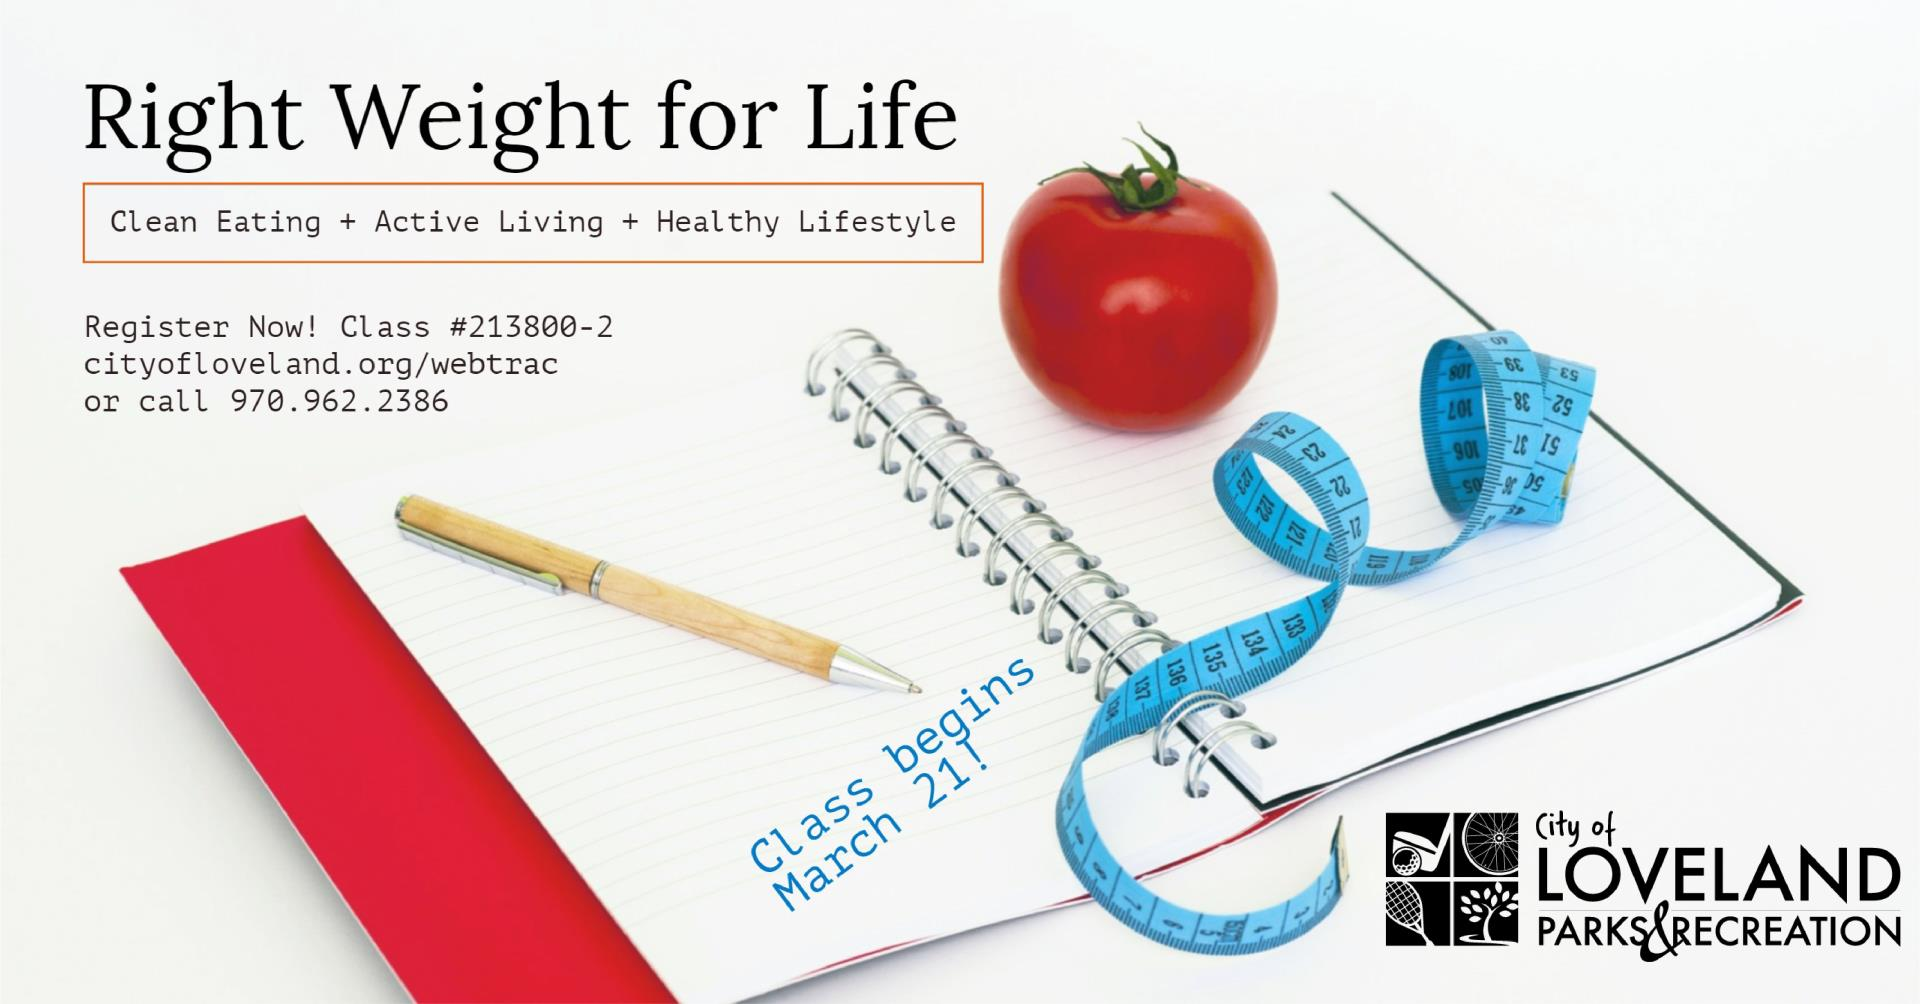 Register now for Right Weight for Life class